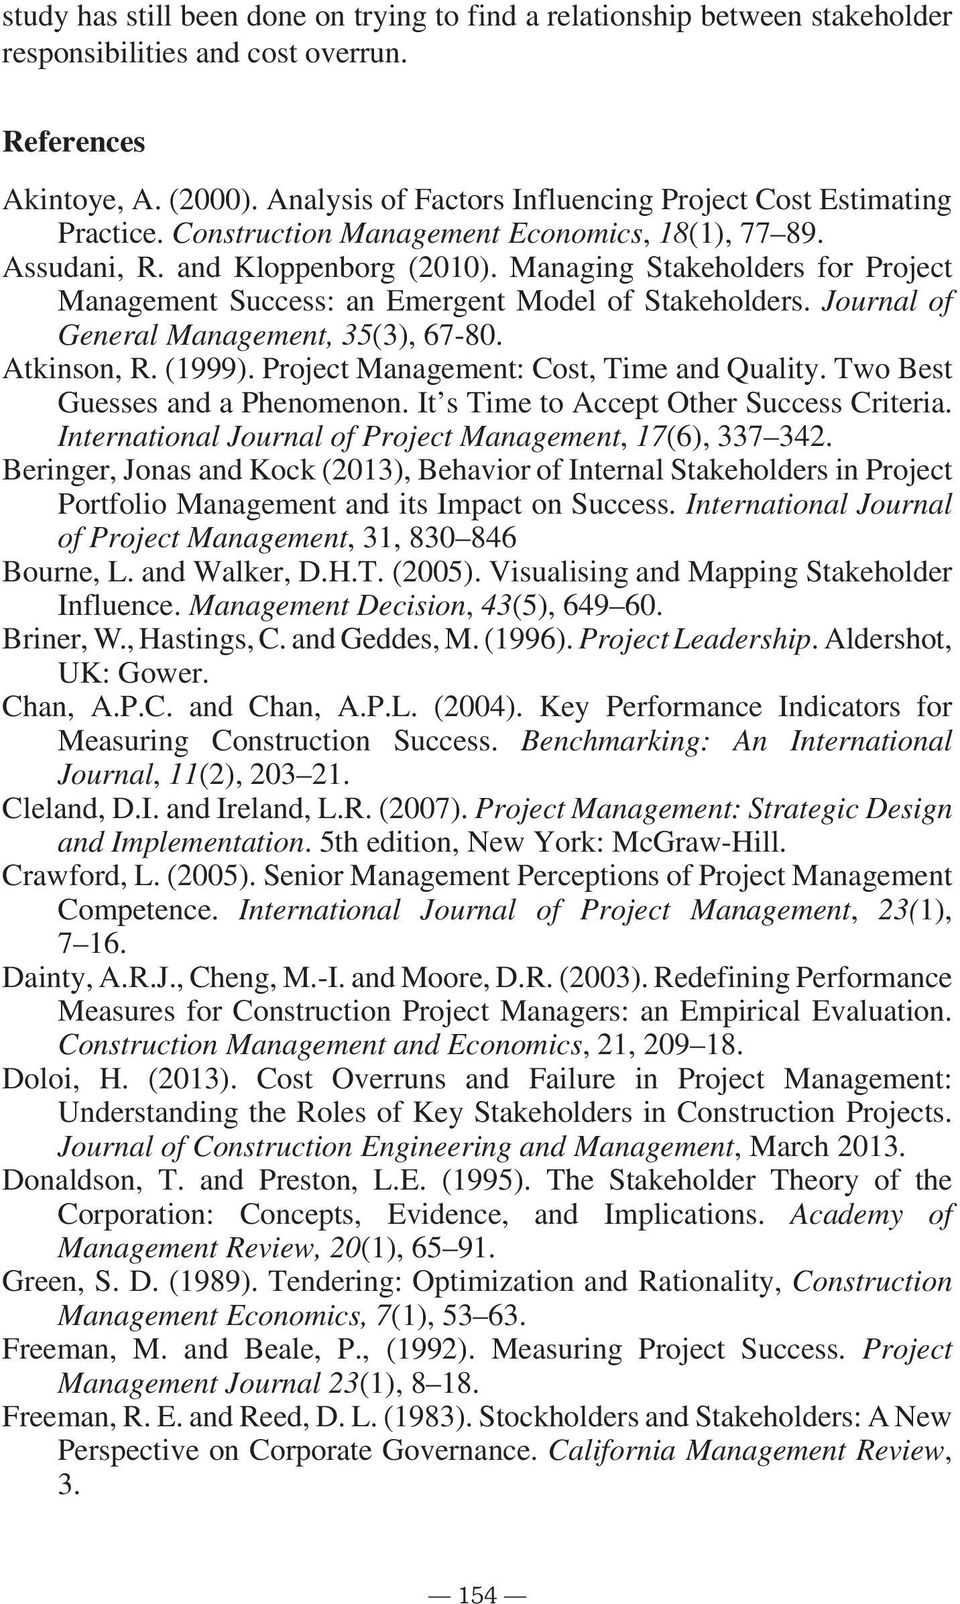 Management: Strategic Design and Implementation International Journal of Project Management, Construction Management and